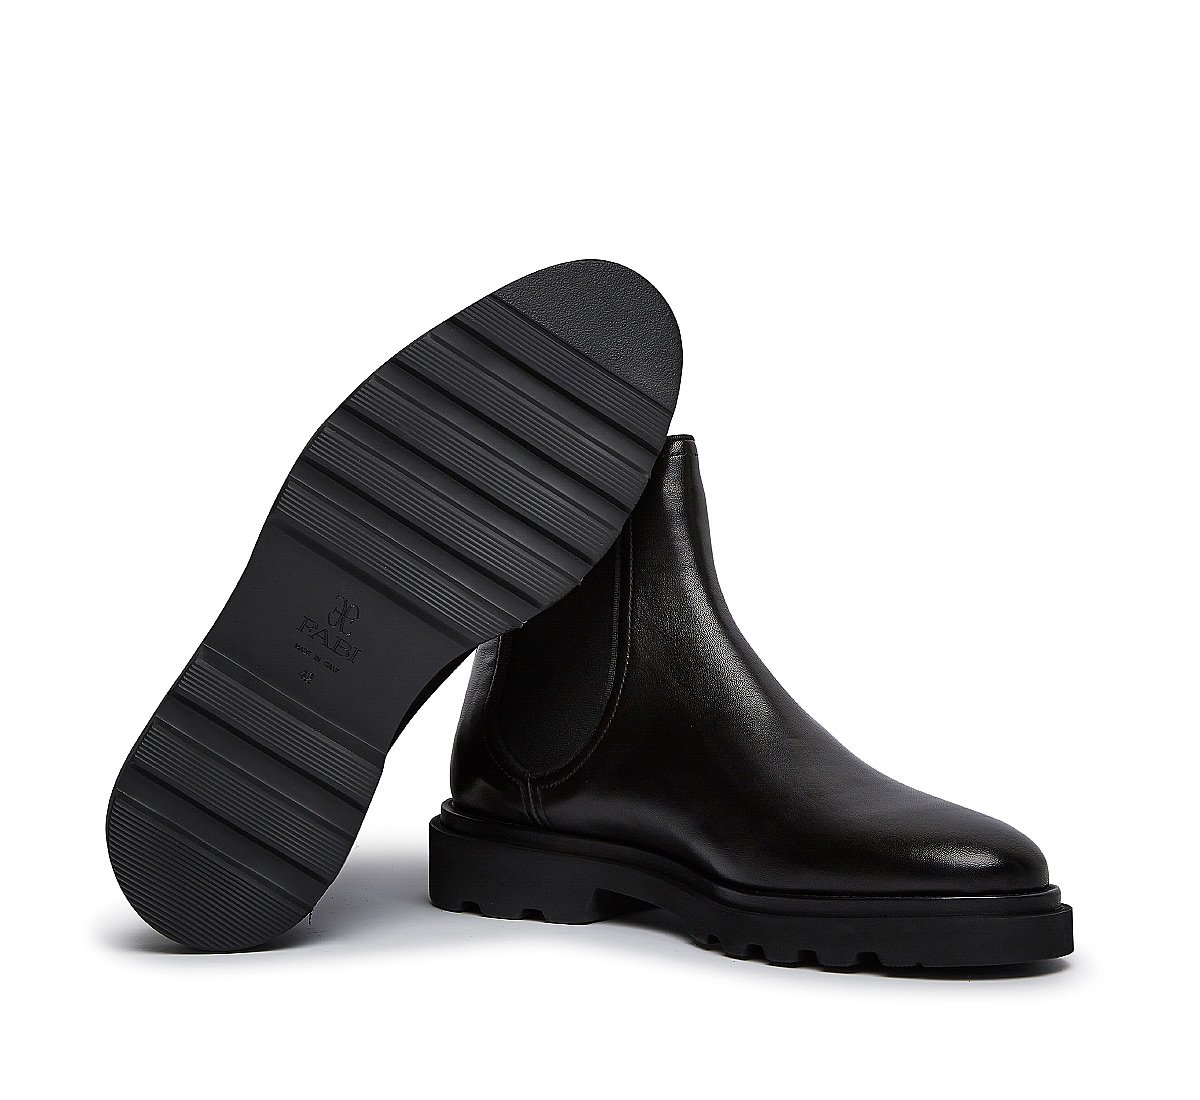 Soft nappa leather Beatle boots